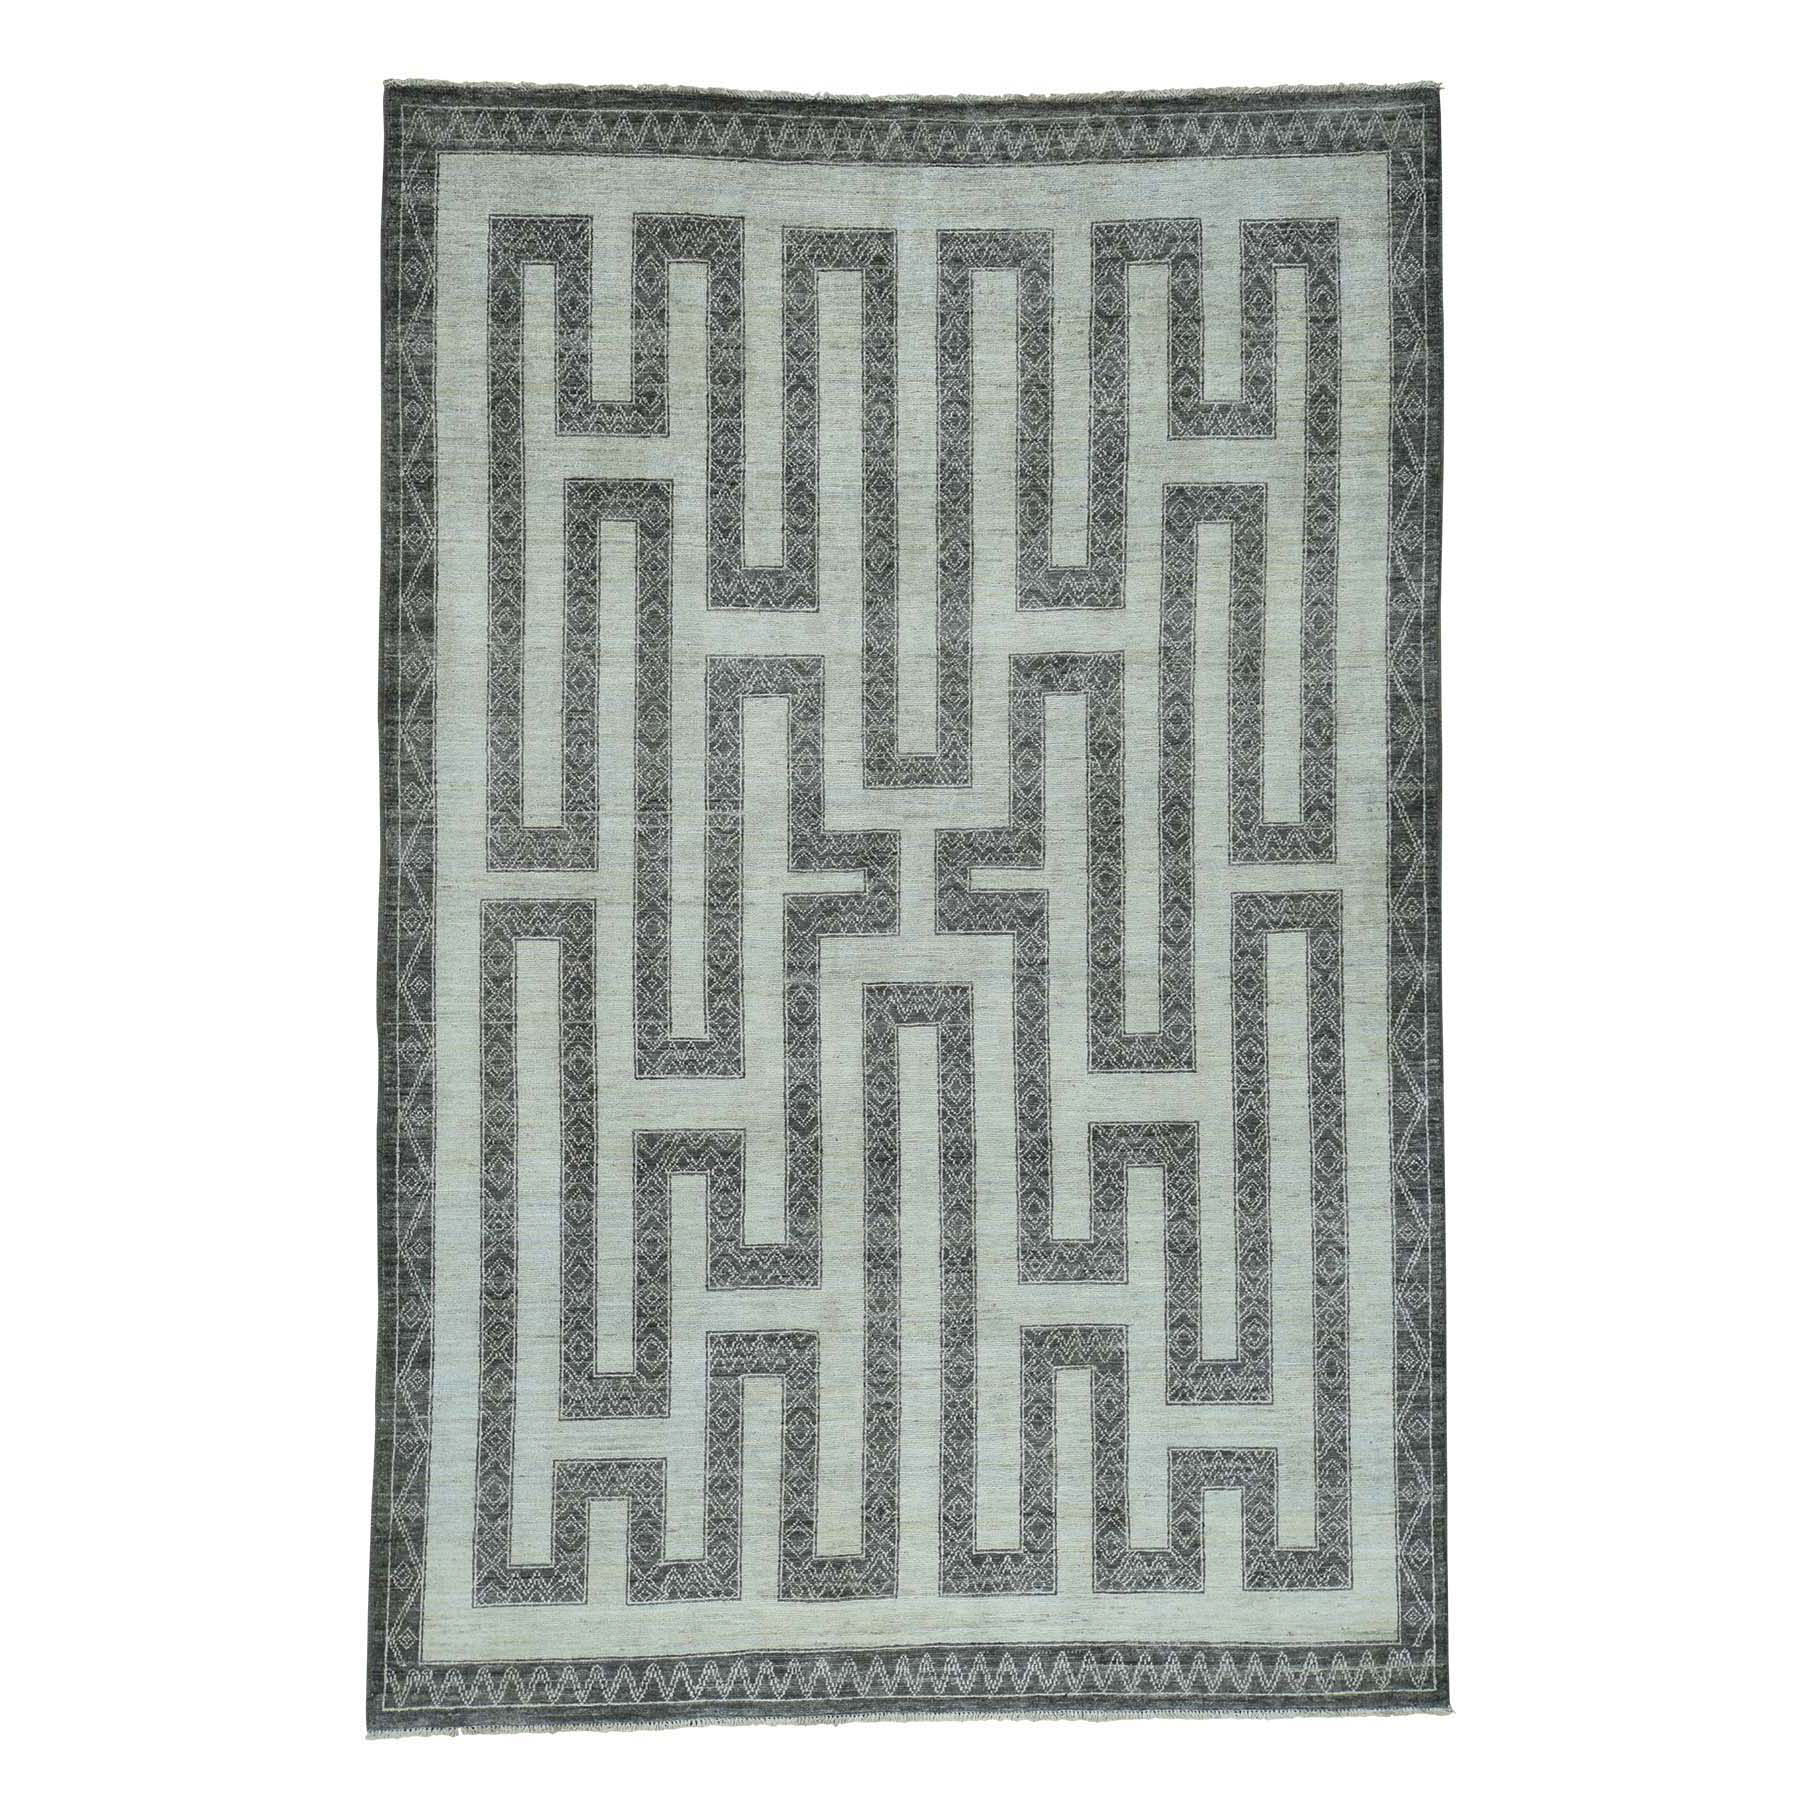 "6'X9'1"" Hand-Knotted Pure Wool Maze Design With Berber Influence Rug moac6d77"